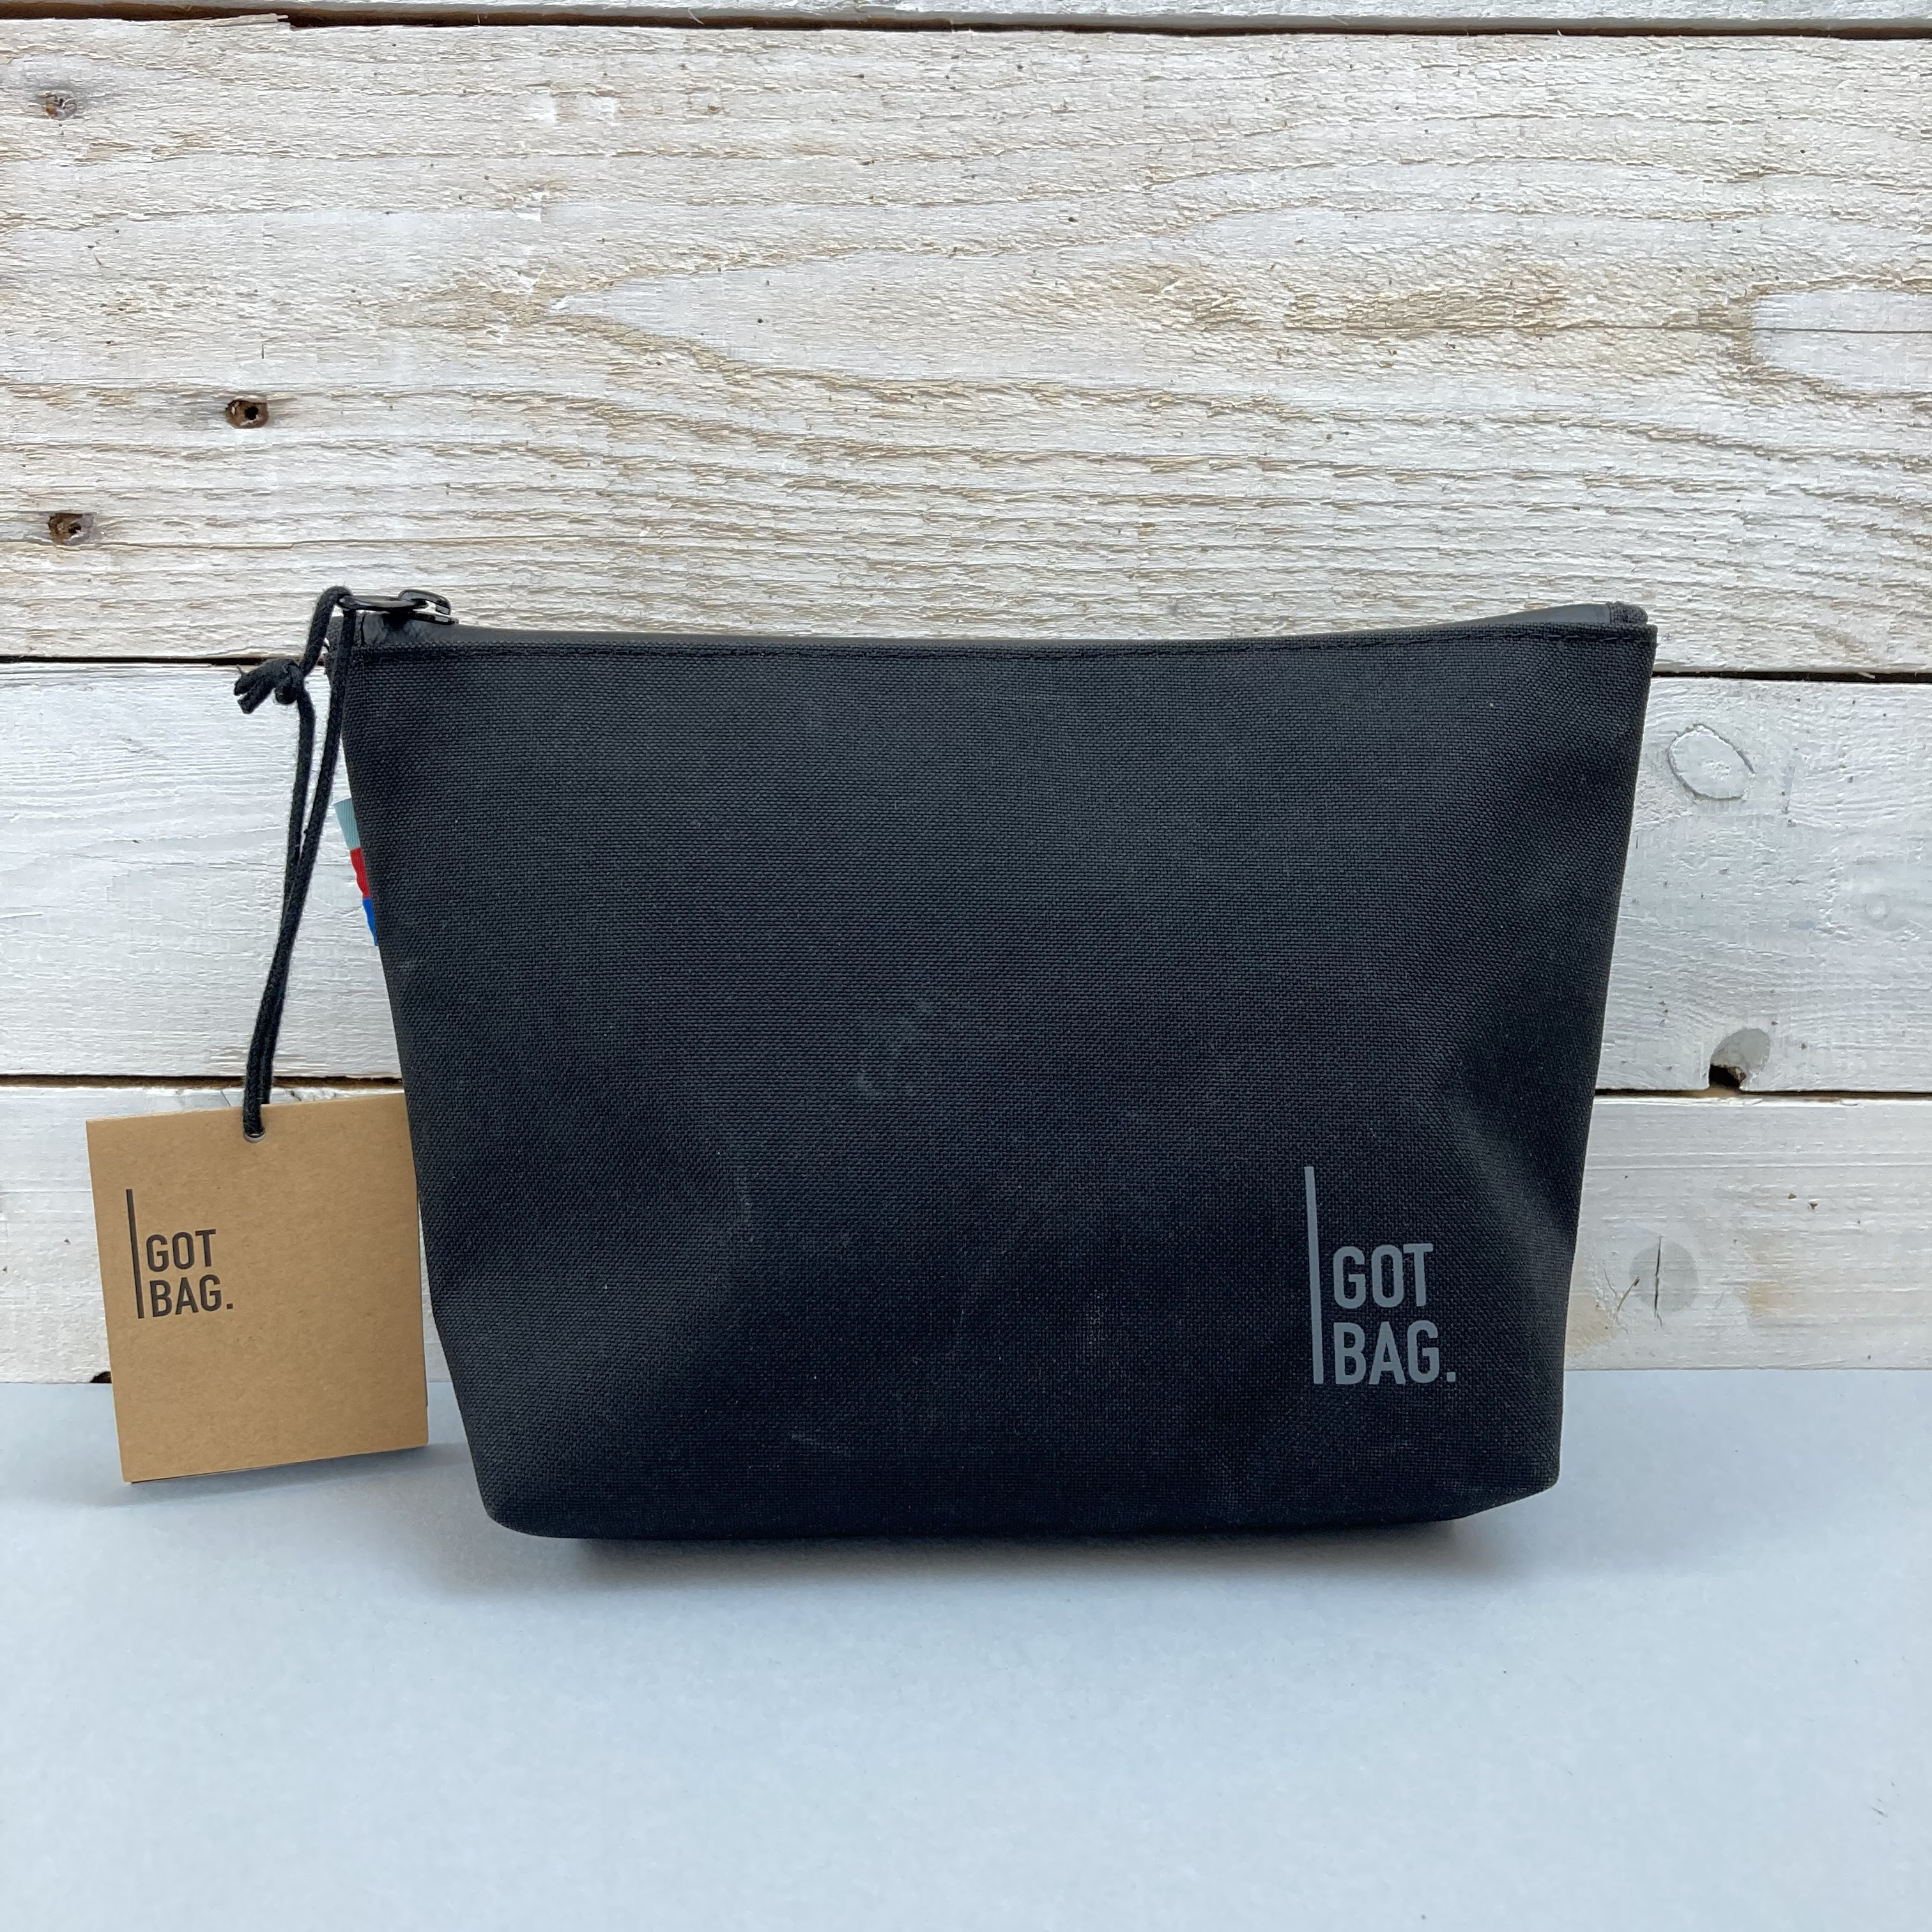 SHOWER BAG von GOT BAG